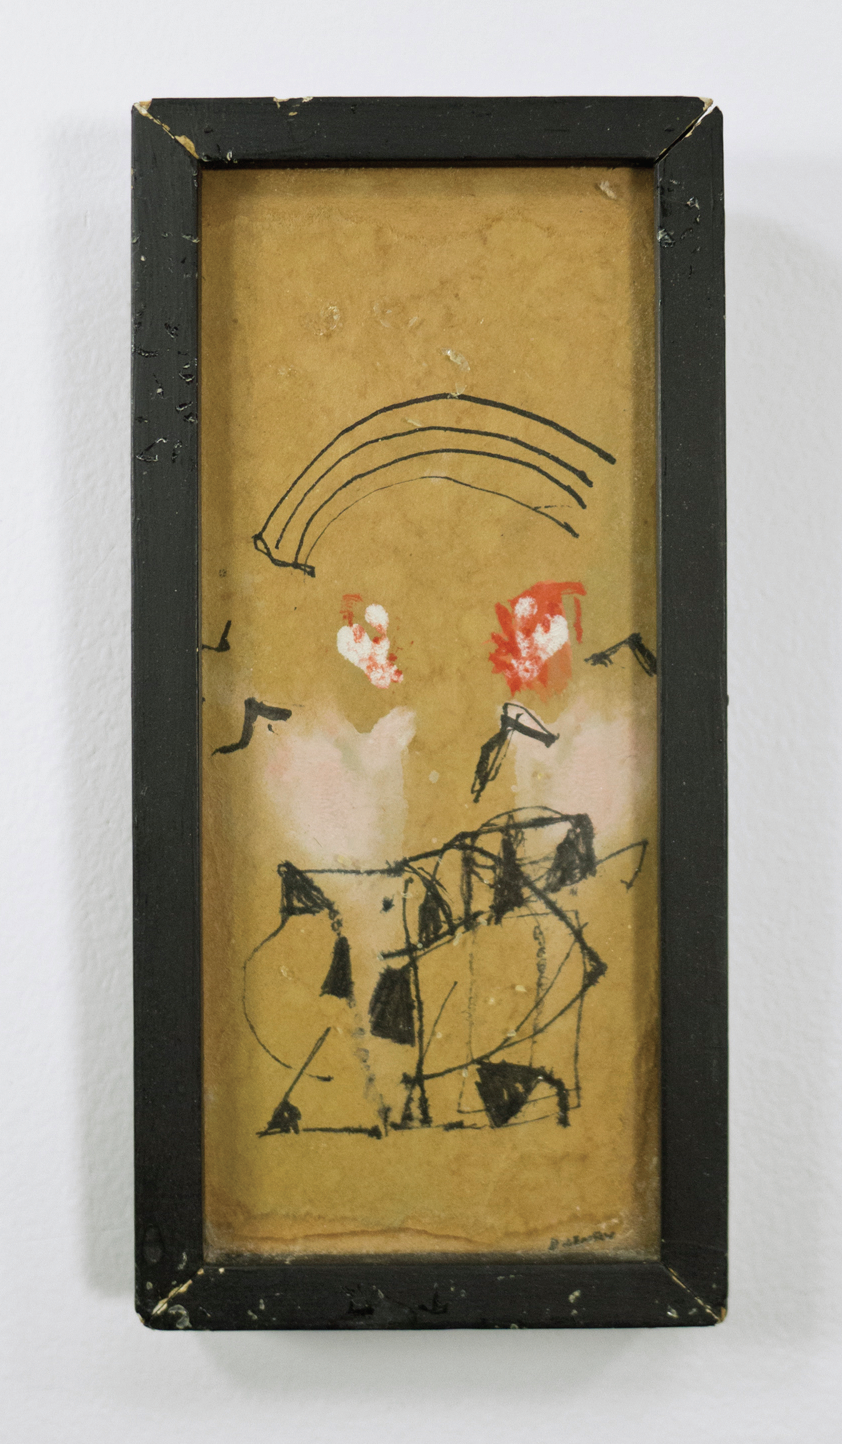 "The Lover; circa 1950; Ink, Casein on paper or board; 5 1⁄2 x 2 1⁄2""; Item #023"